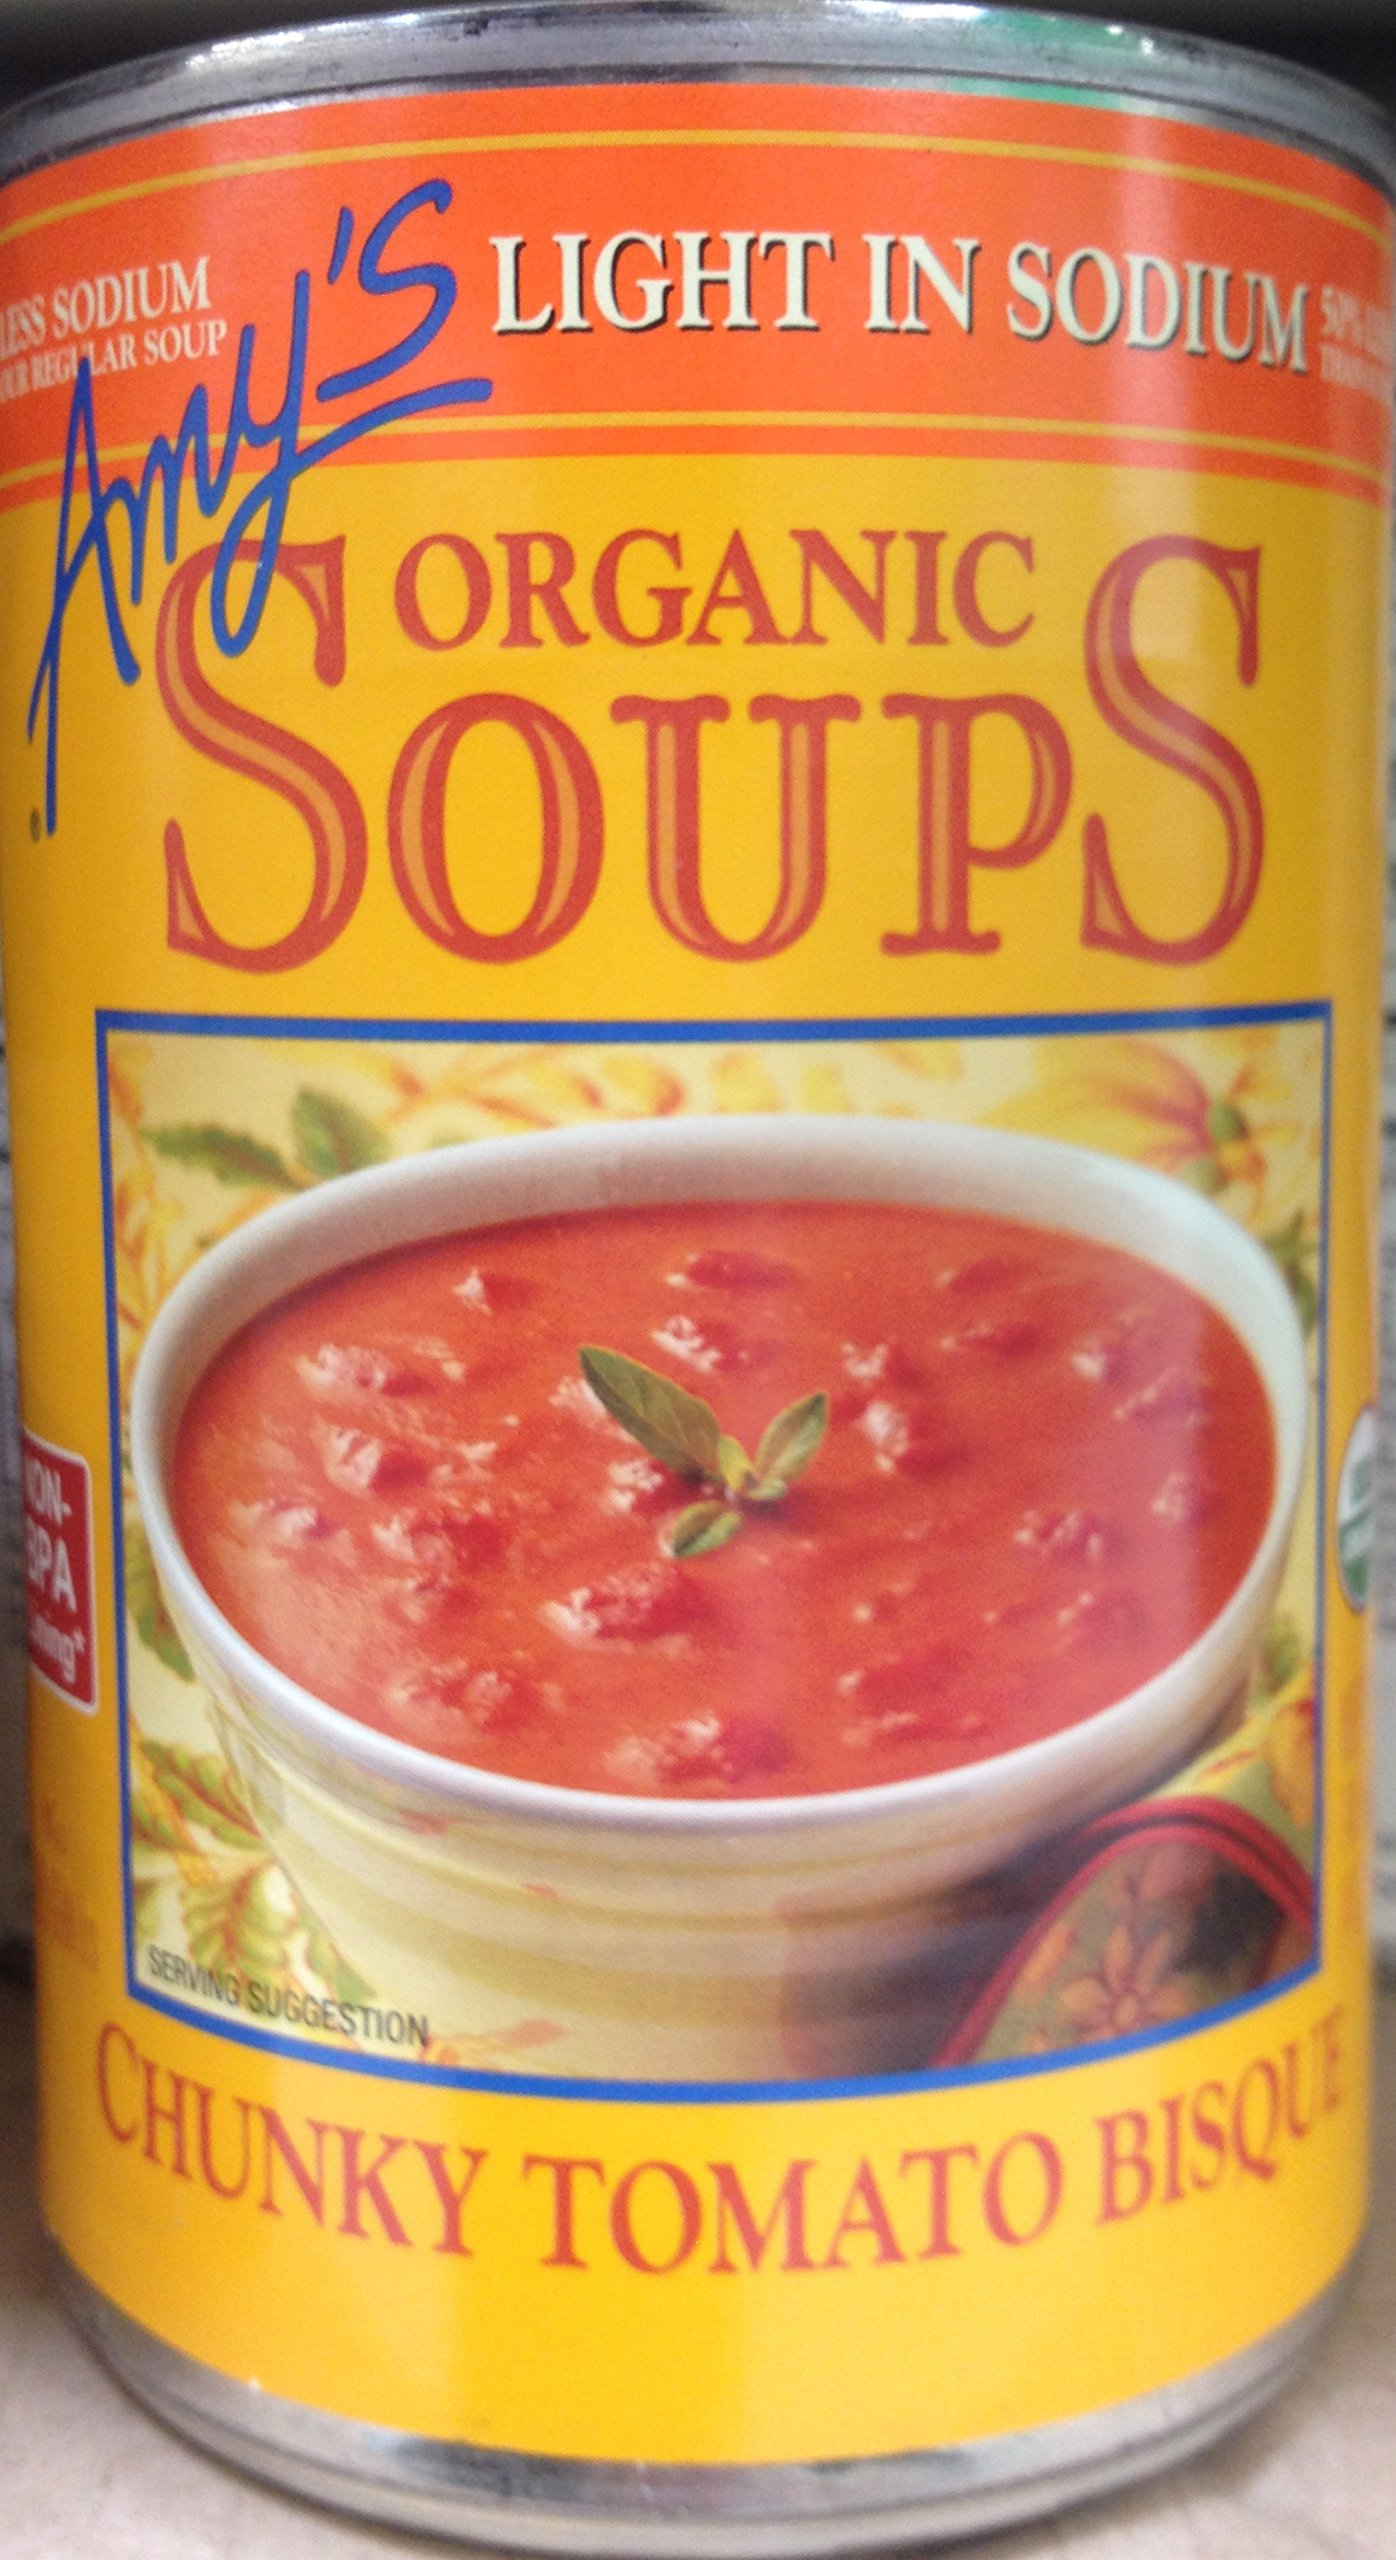 Amy's Organic Soups Light in Sodium Chunky Tomato Bisque 14.5oz Can (Pack of 7)